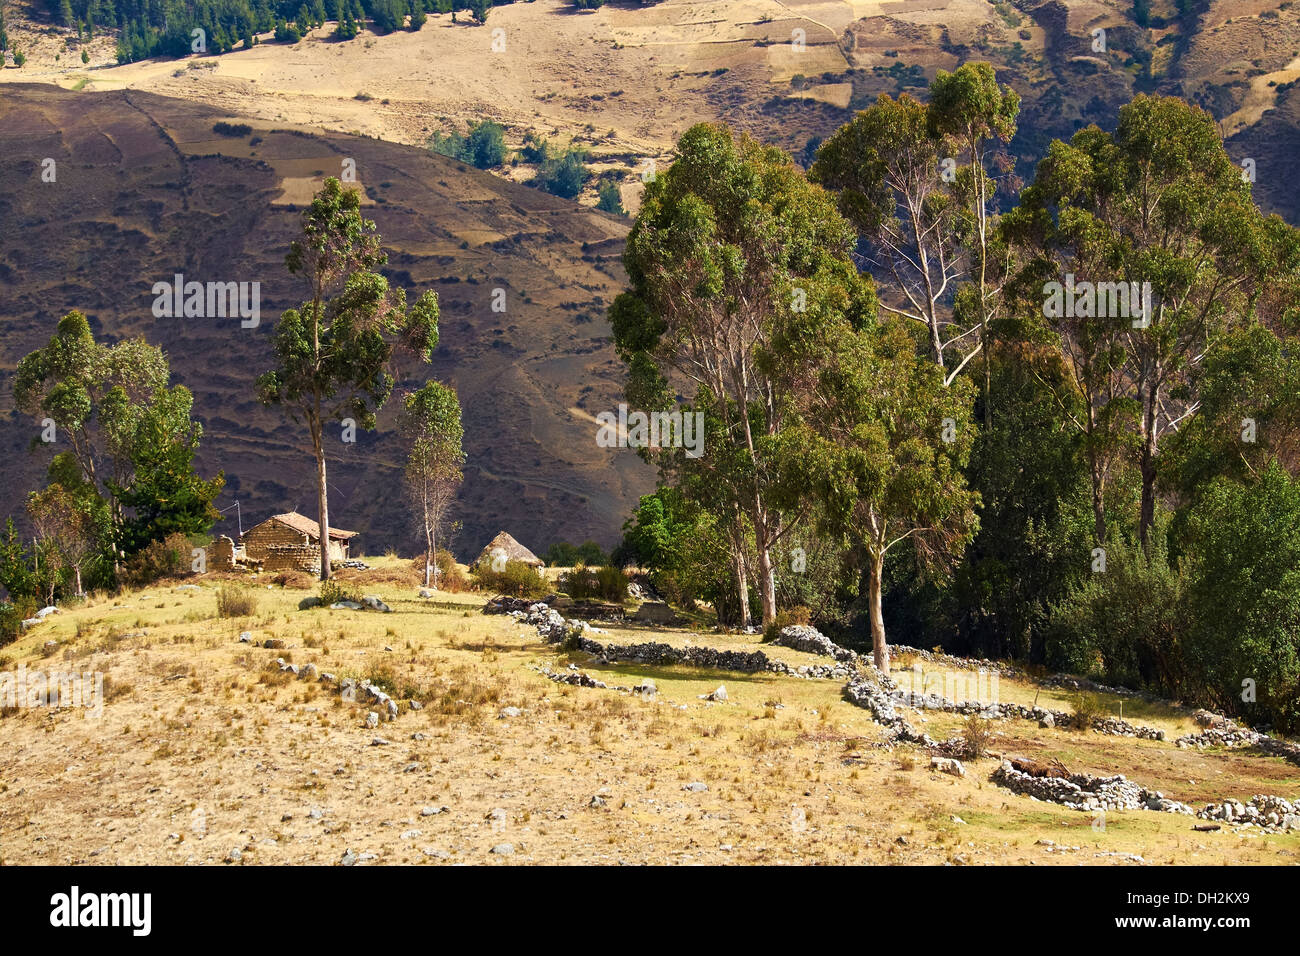 Traditional adobe settlement in the Huascaran National Park in the Andes, South America. Stock Photo